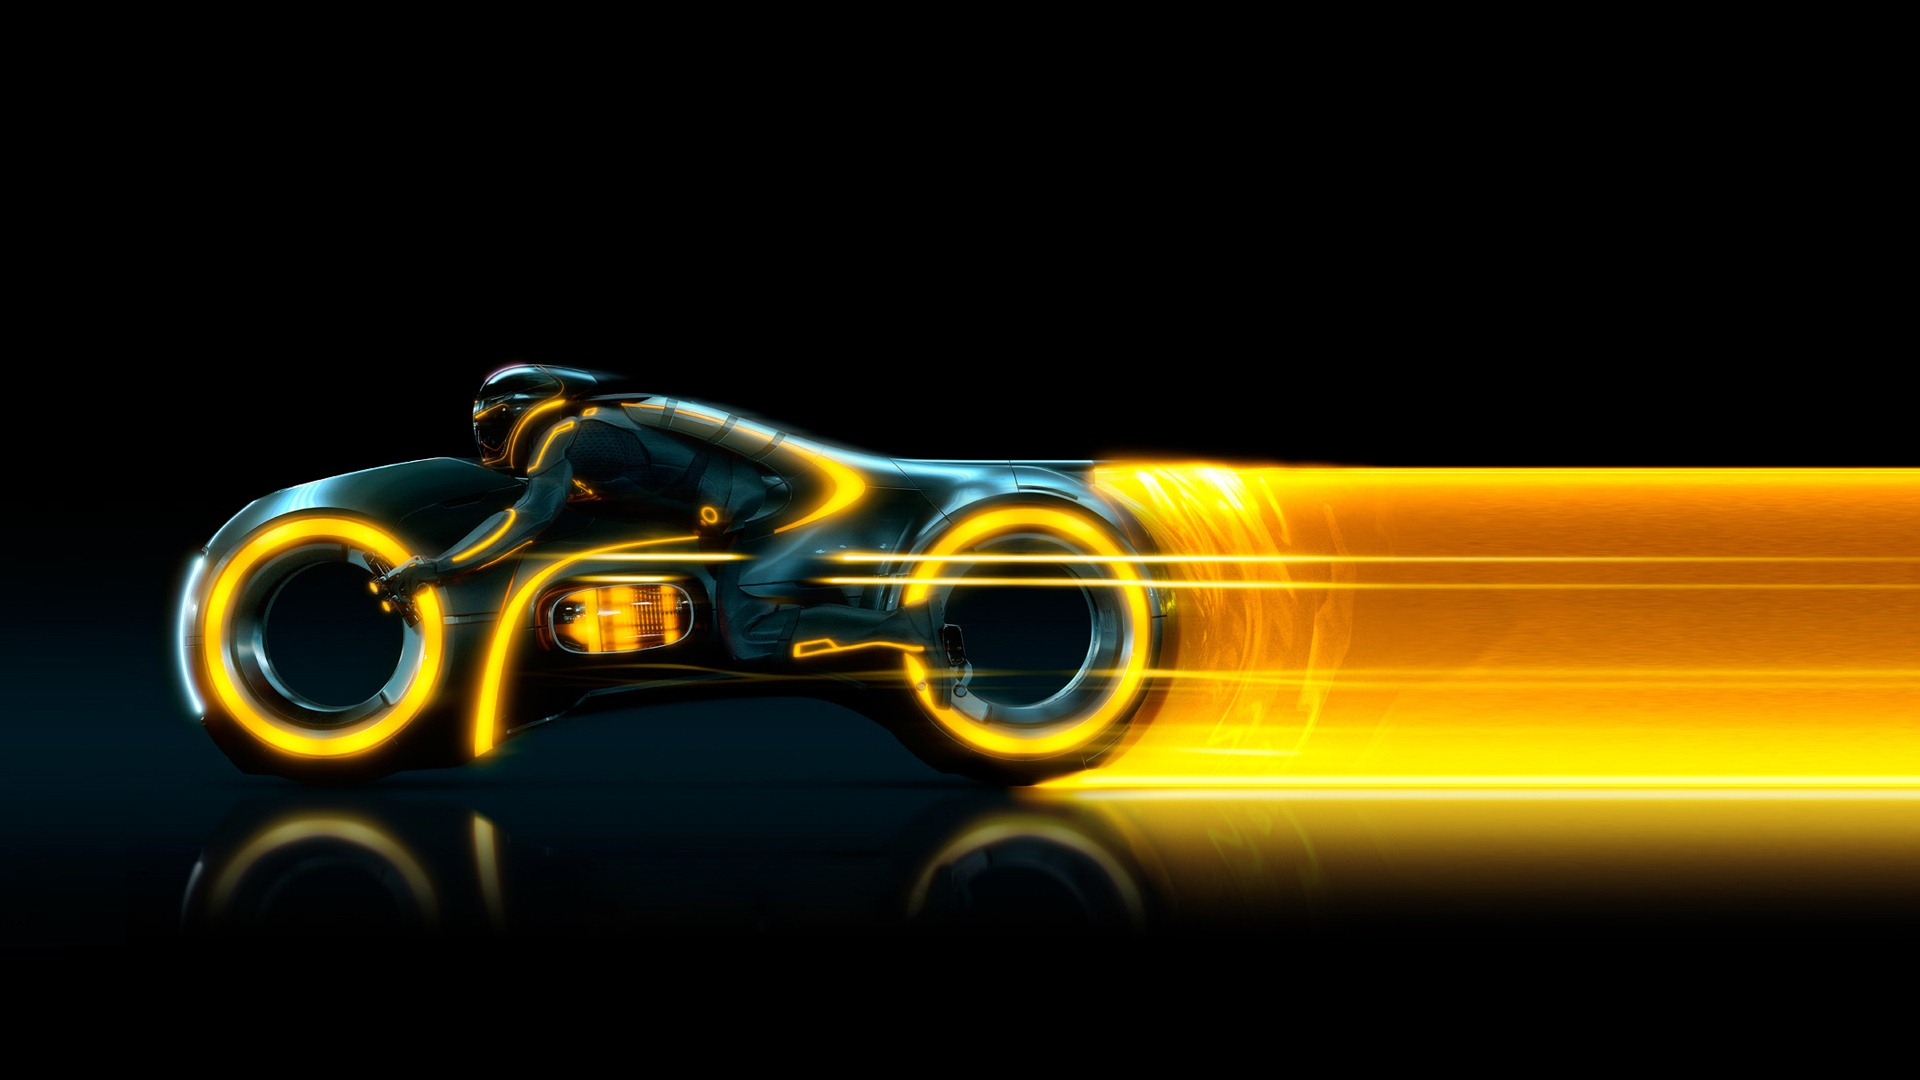 tron legacy hd wallpapers, full hd p background  hd desktop